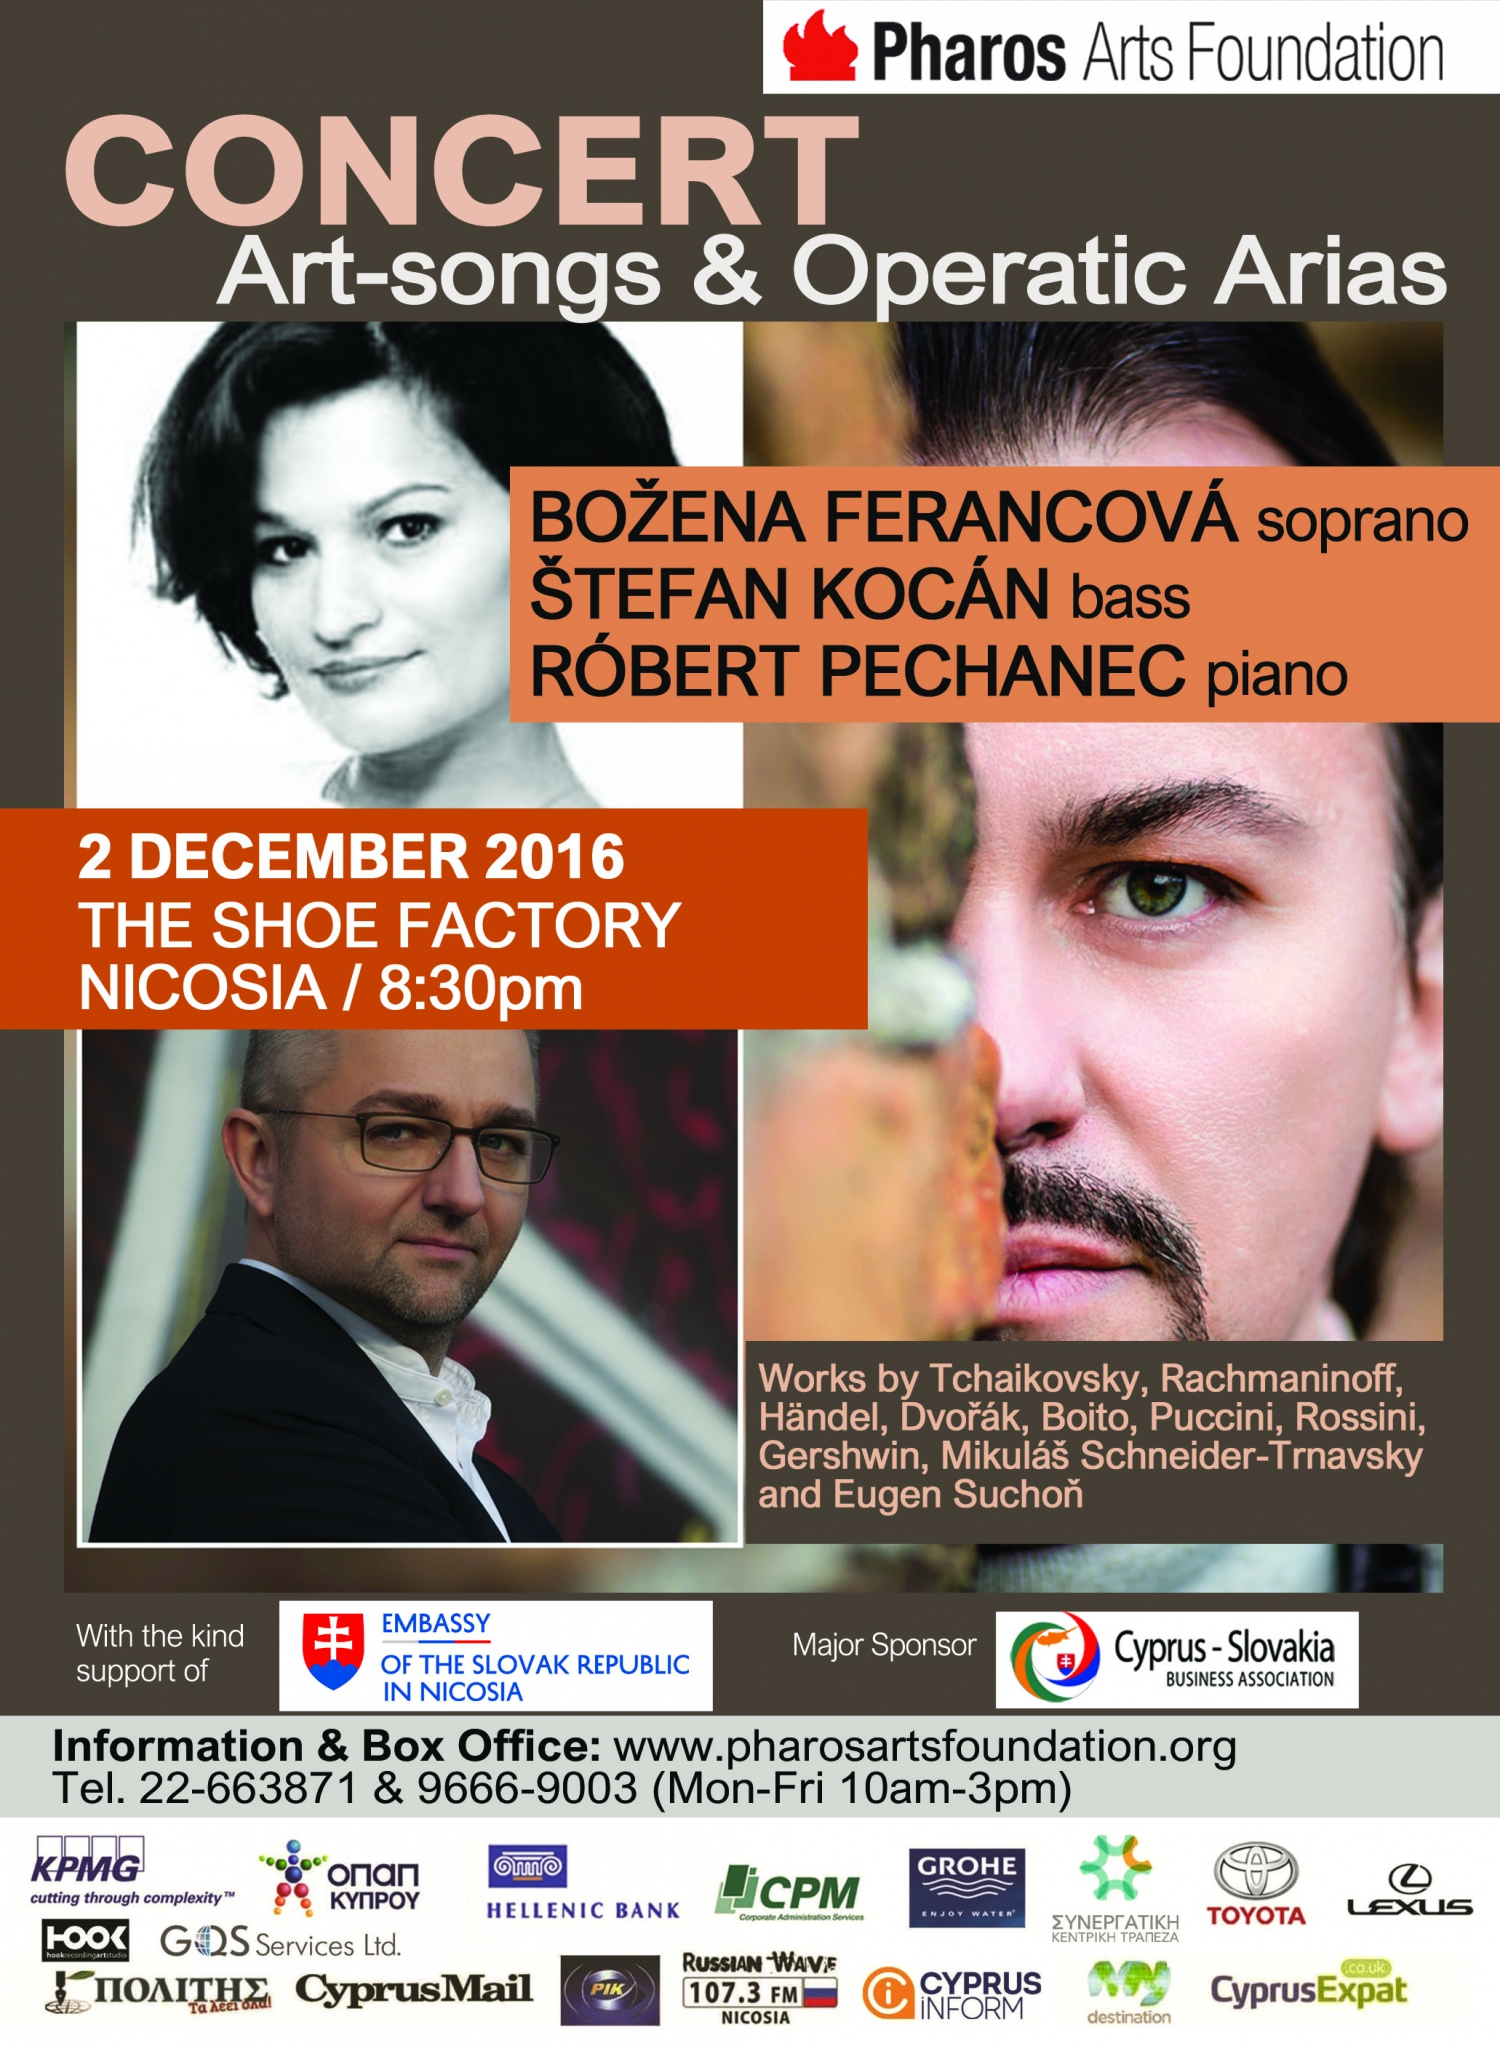 Concert: An evening of Art-songs & Operatic arias